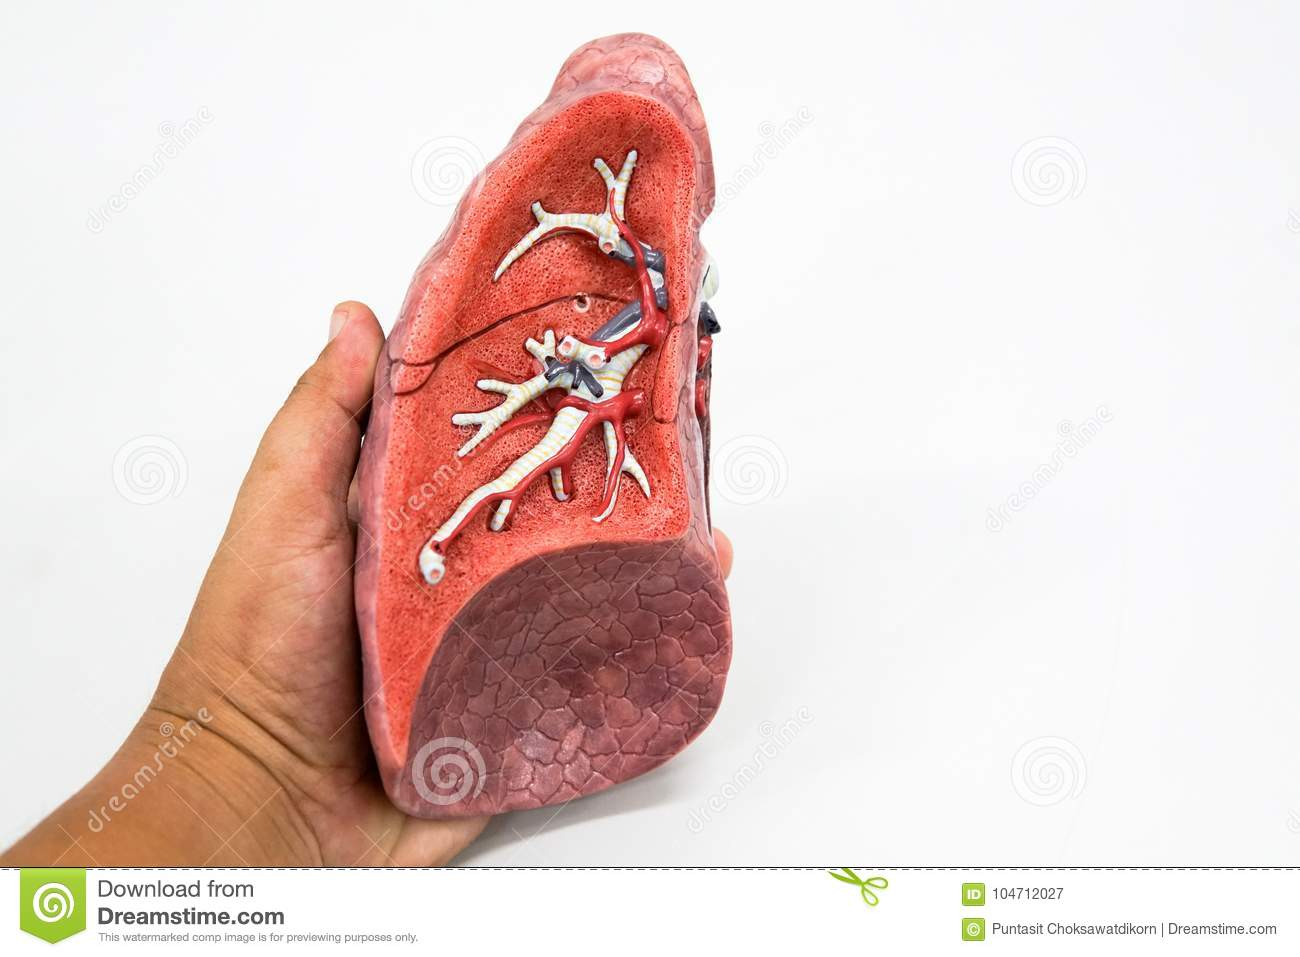 Human Lung Anatomy Model Stock Image Image Of Chest 104712027